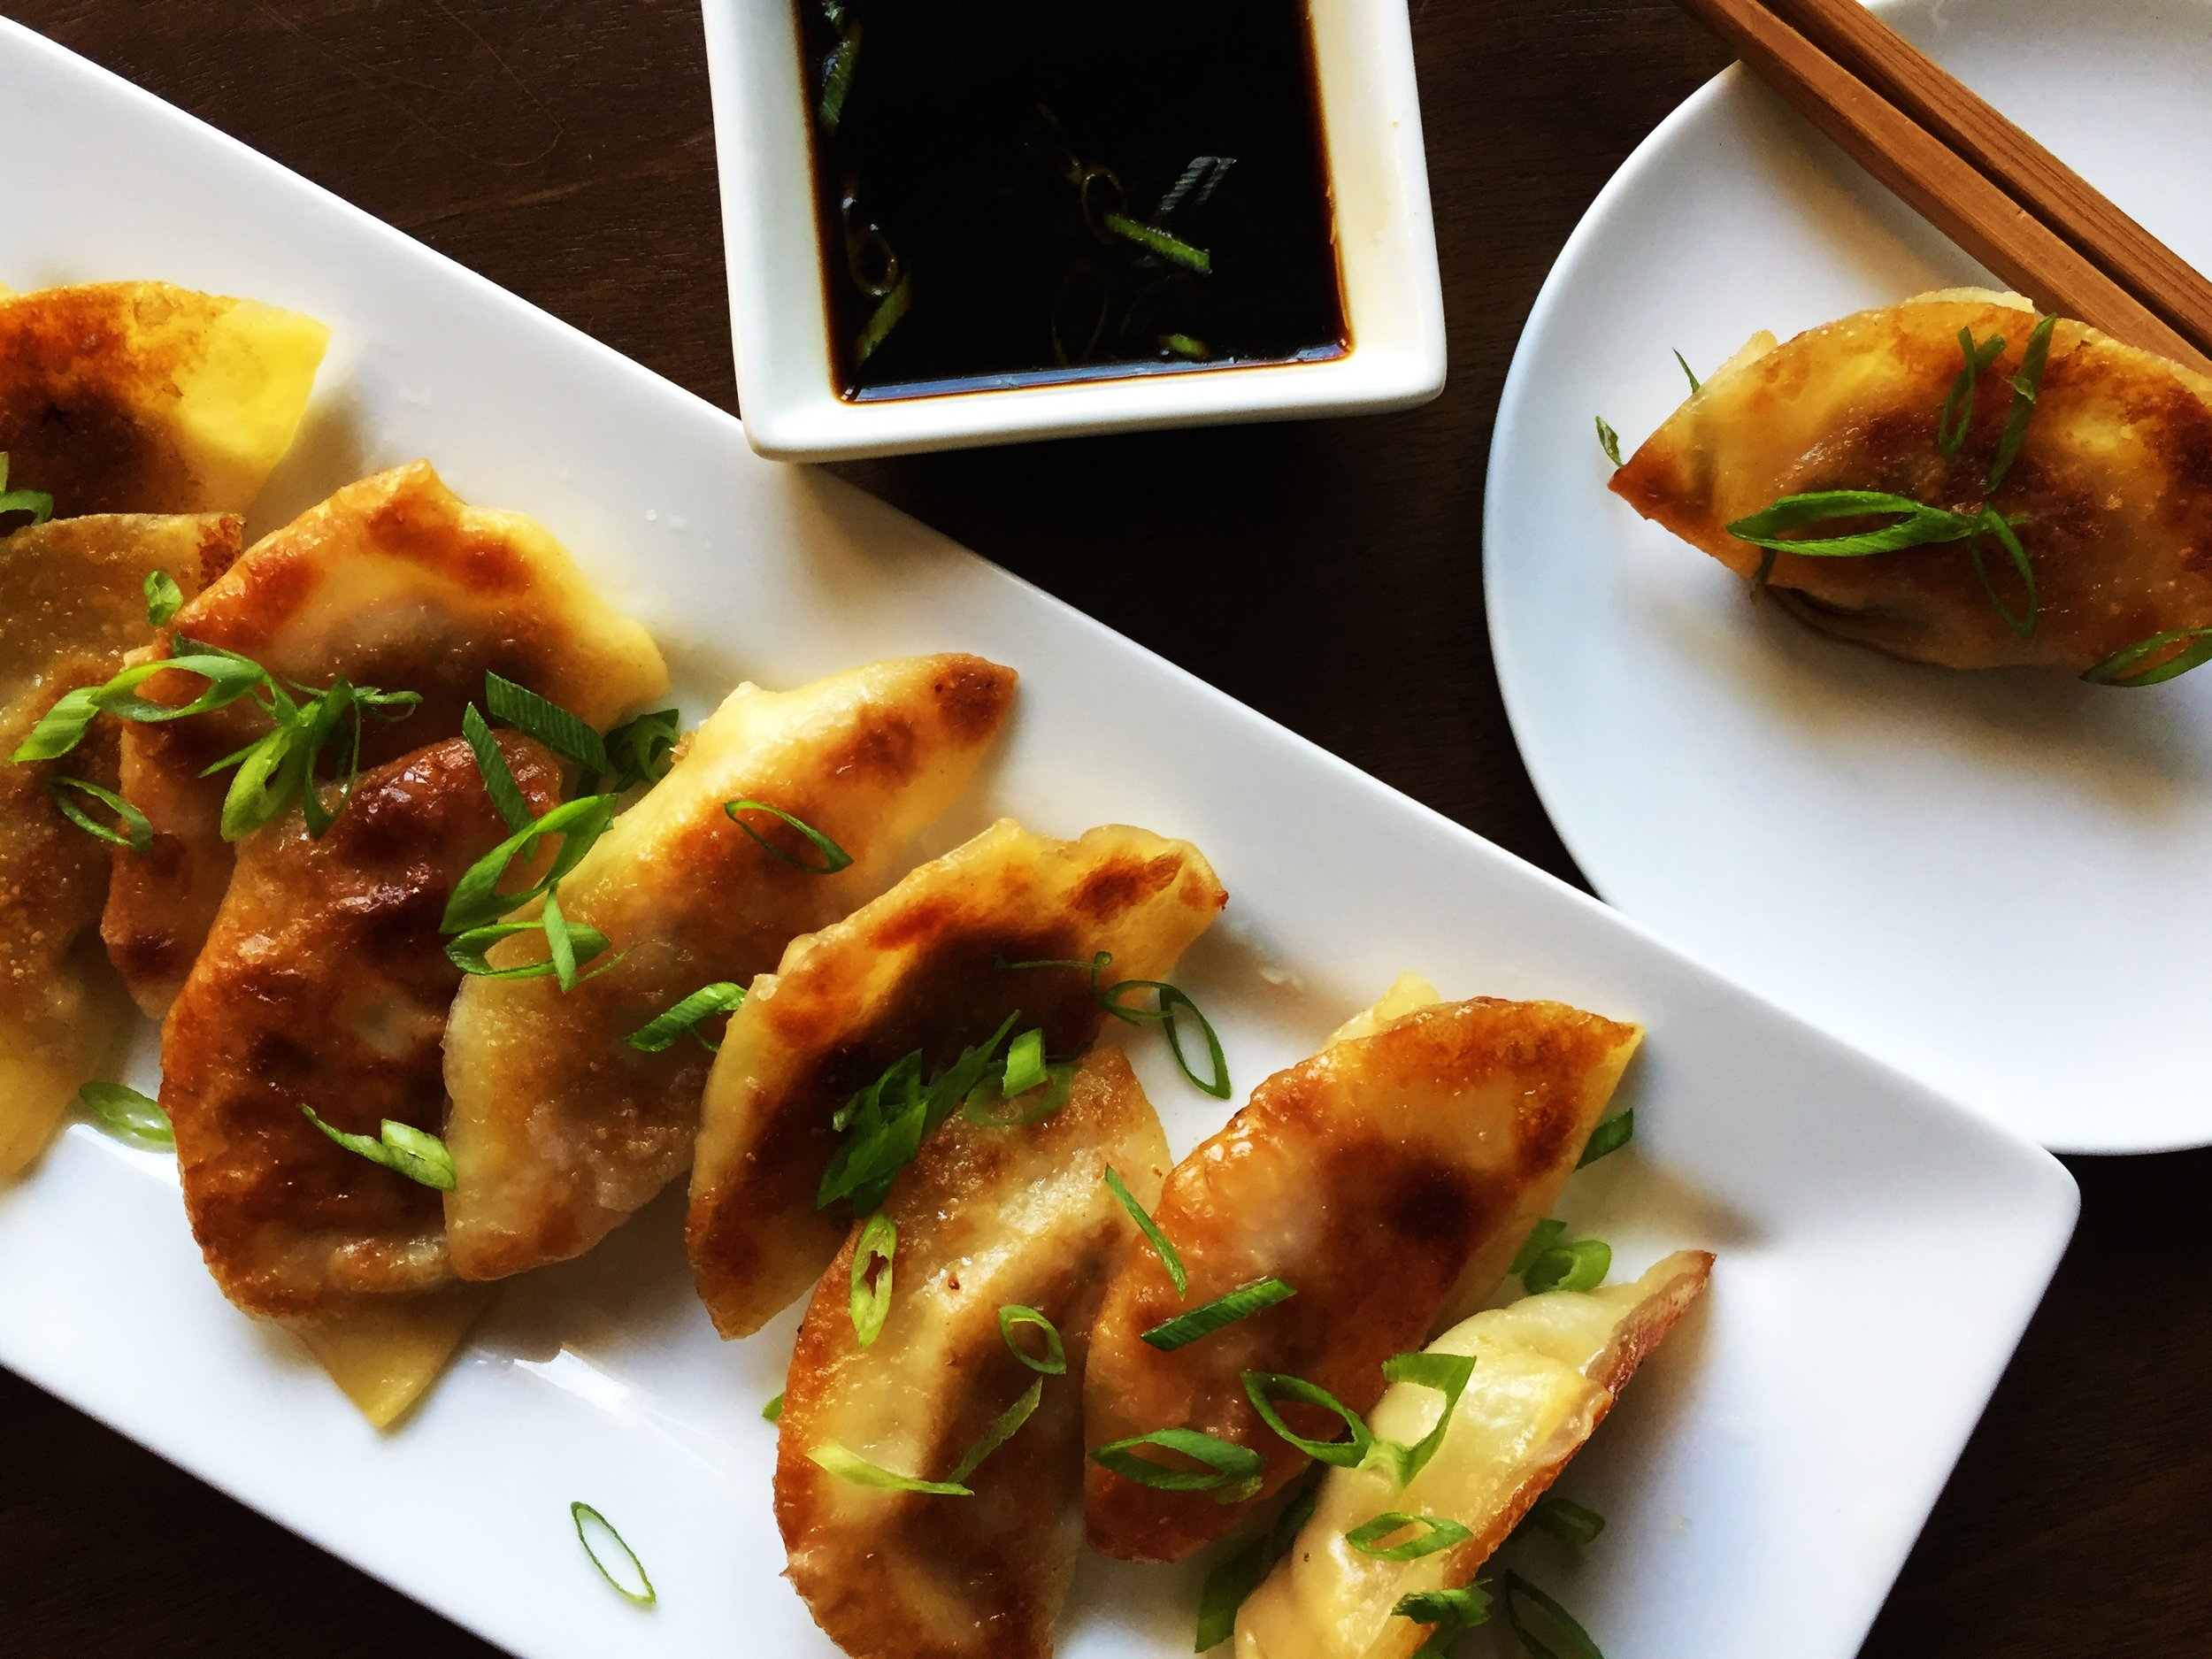 Potstickers with hoisin and sriracha sauces